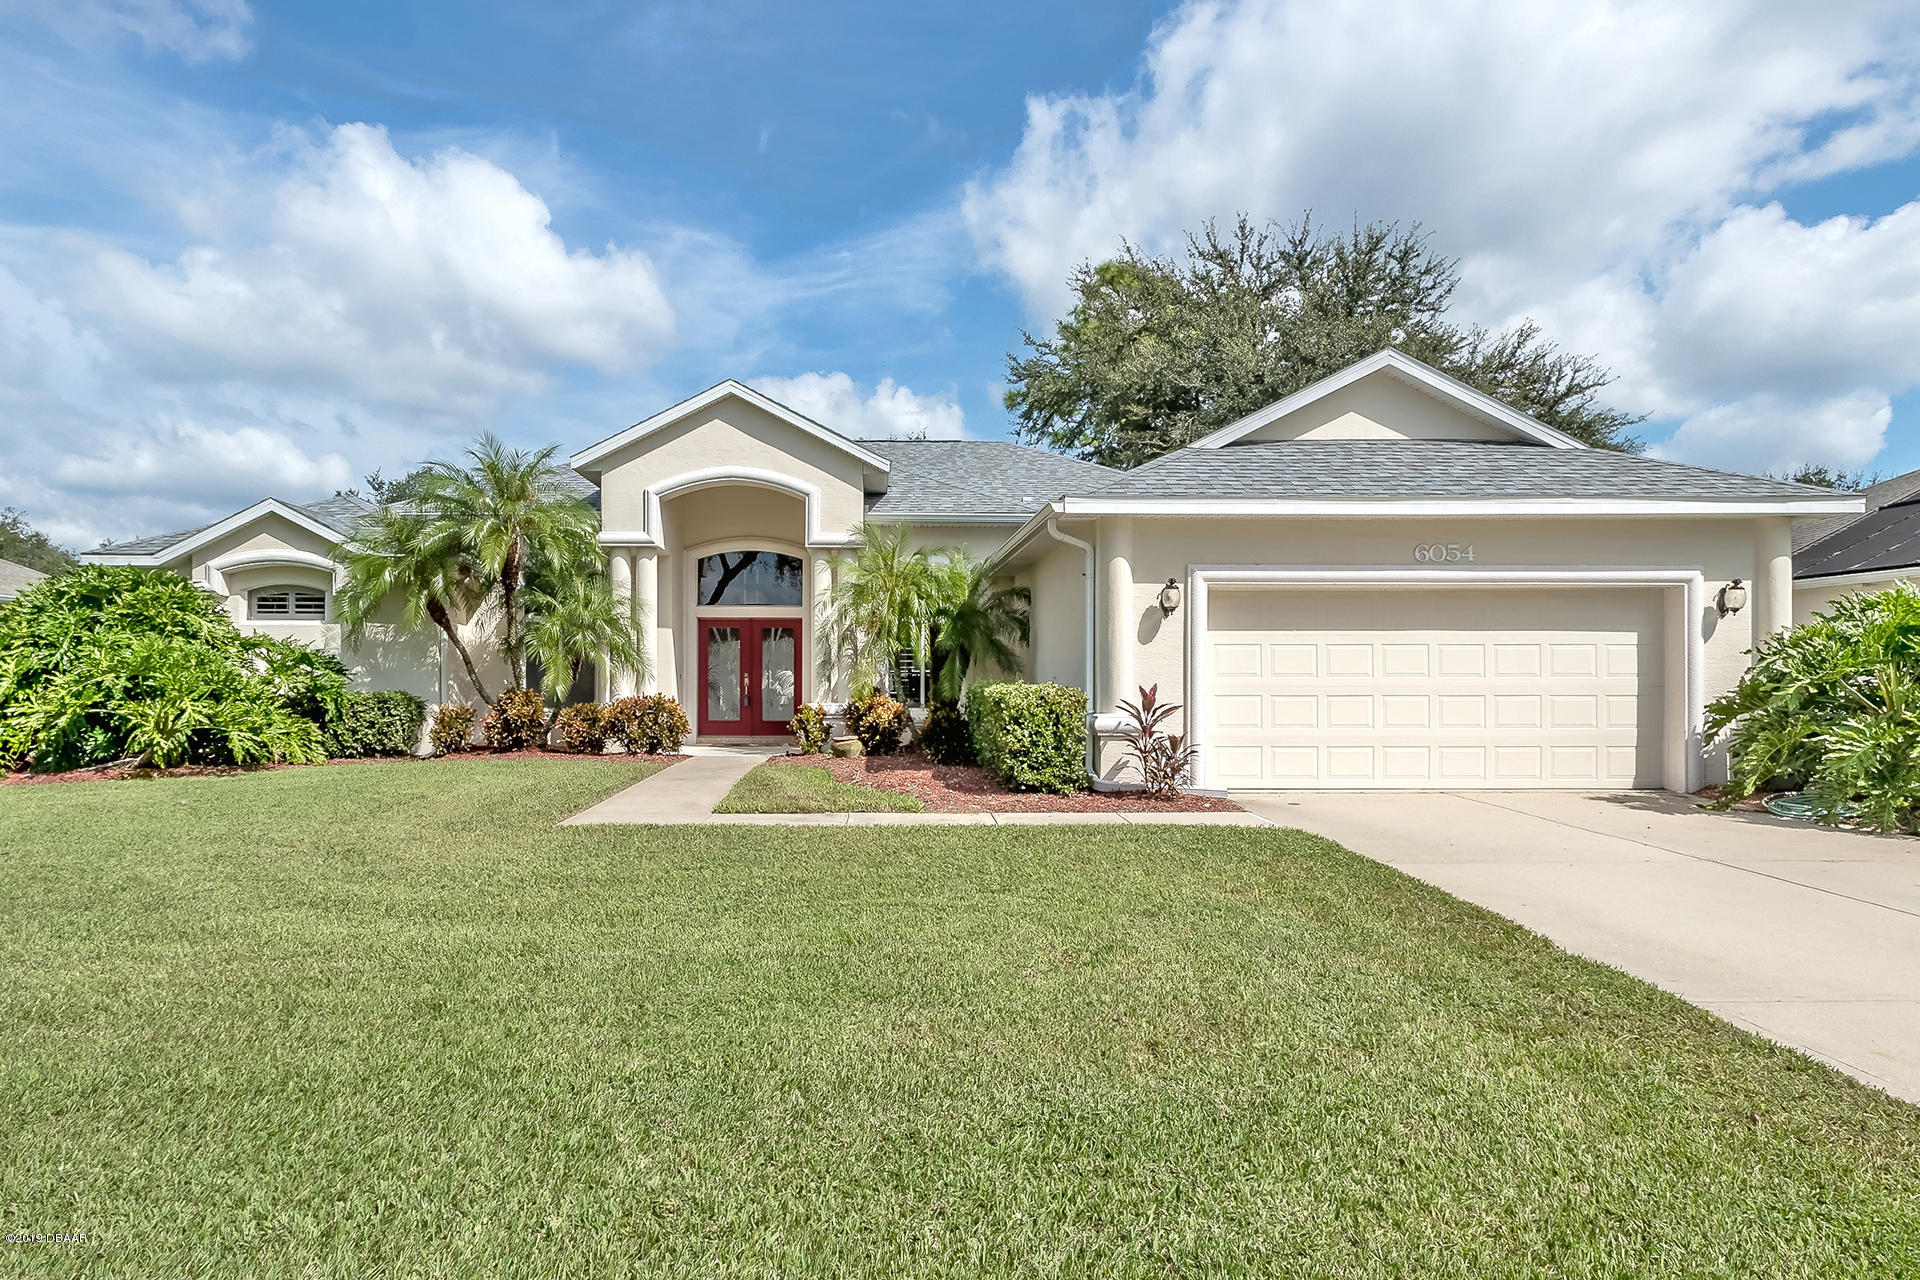 Photo of 6054 Sabal Hammock Circle, Port Orange, FL 32128